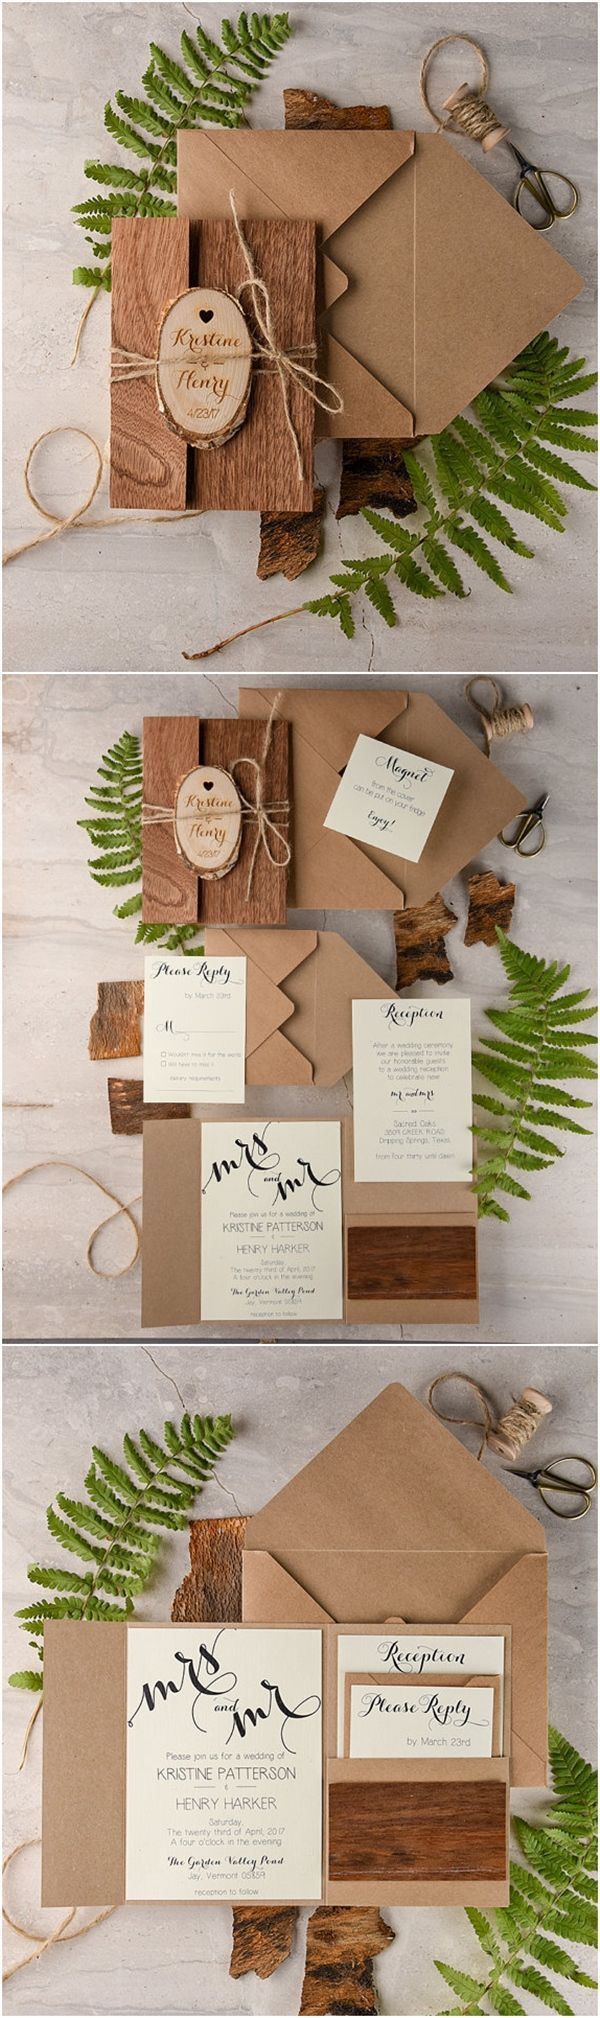 print yourself wedding invitations kit%0A    Our Absolutely Favorite Rustic Wedding Invitations    http   www deerpearlflowers